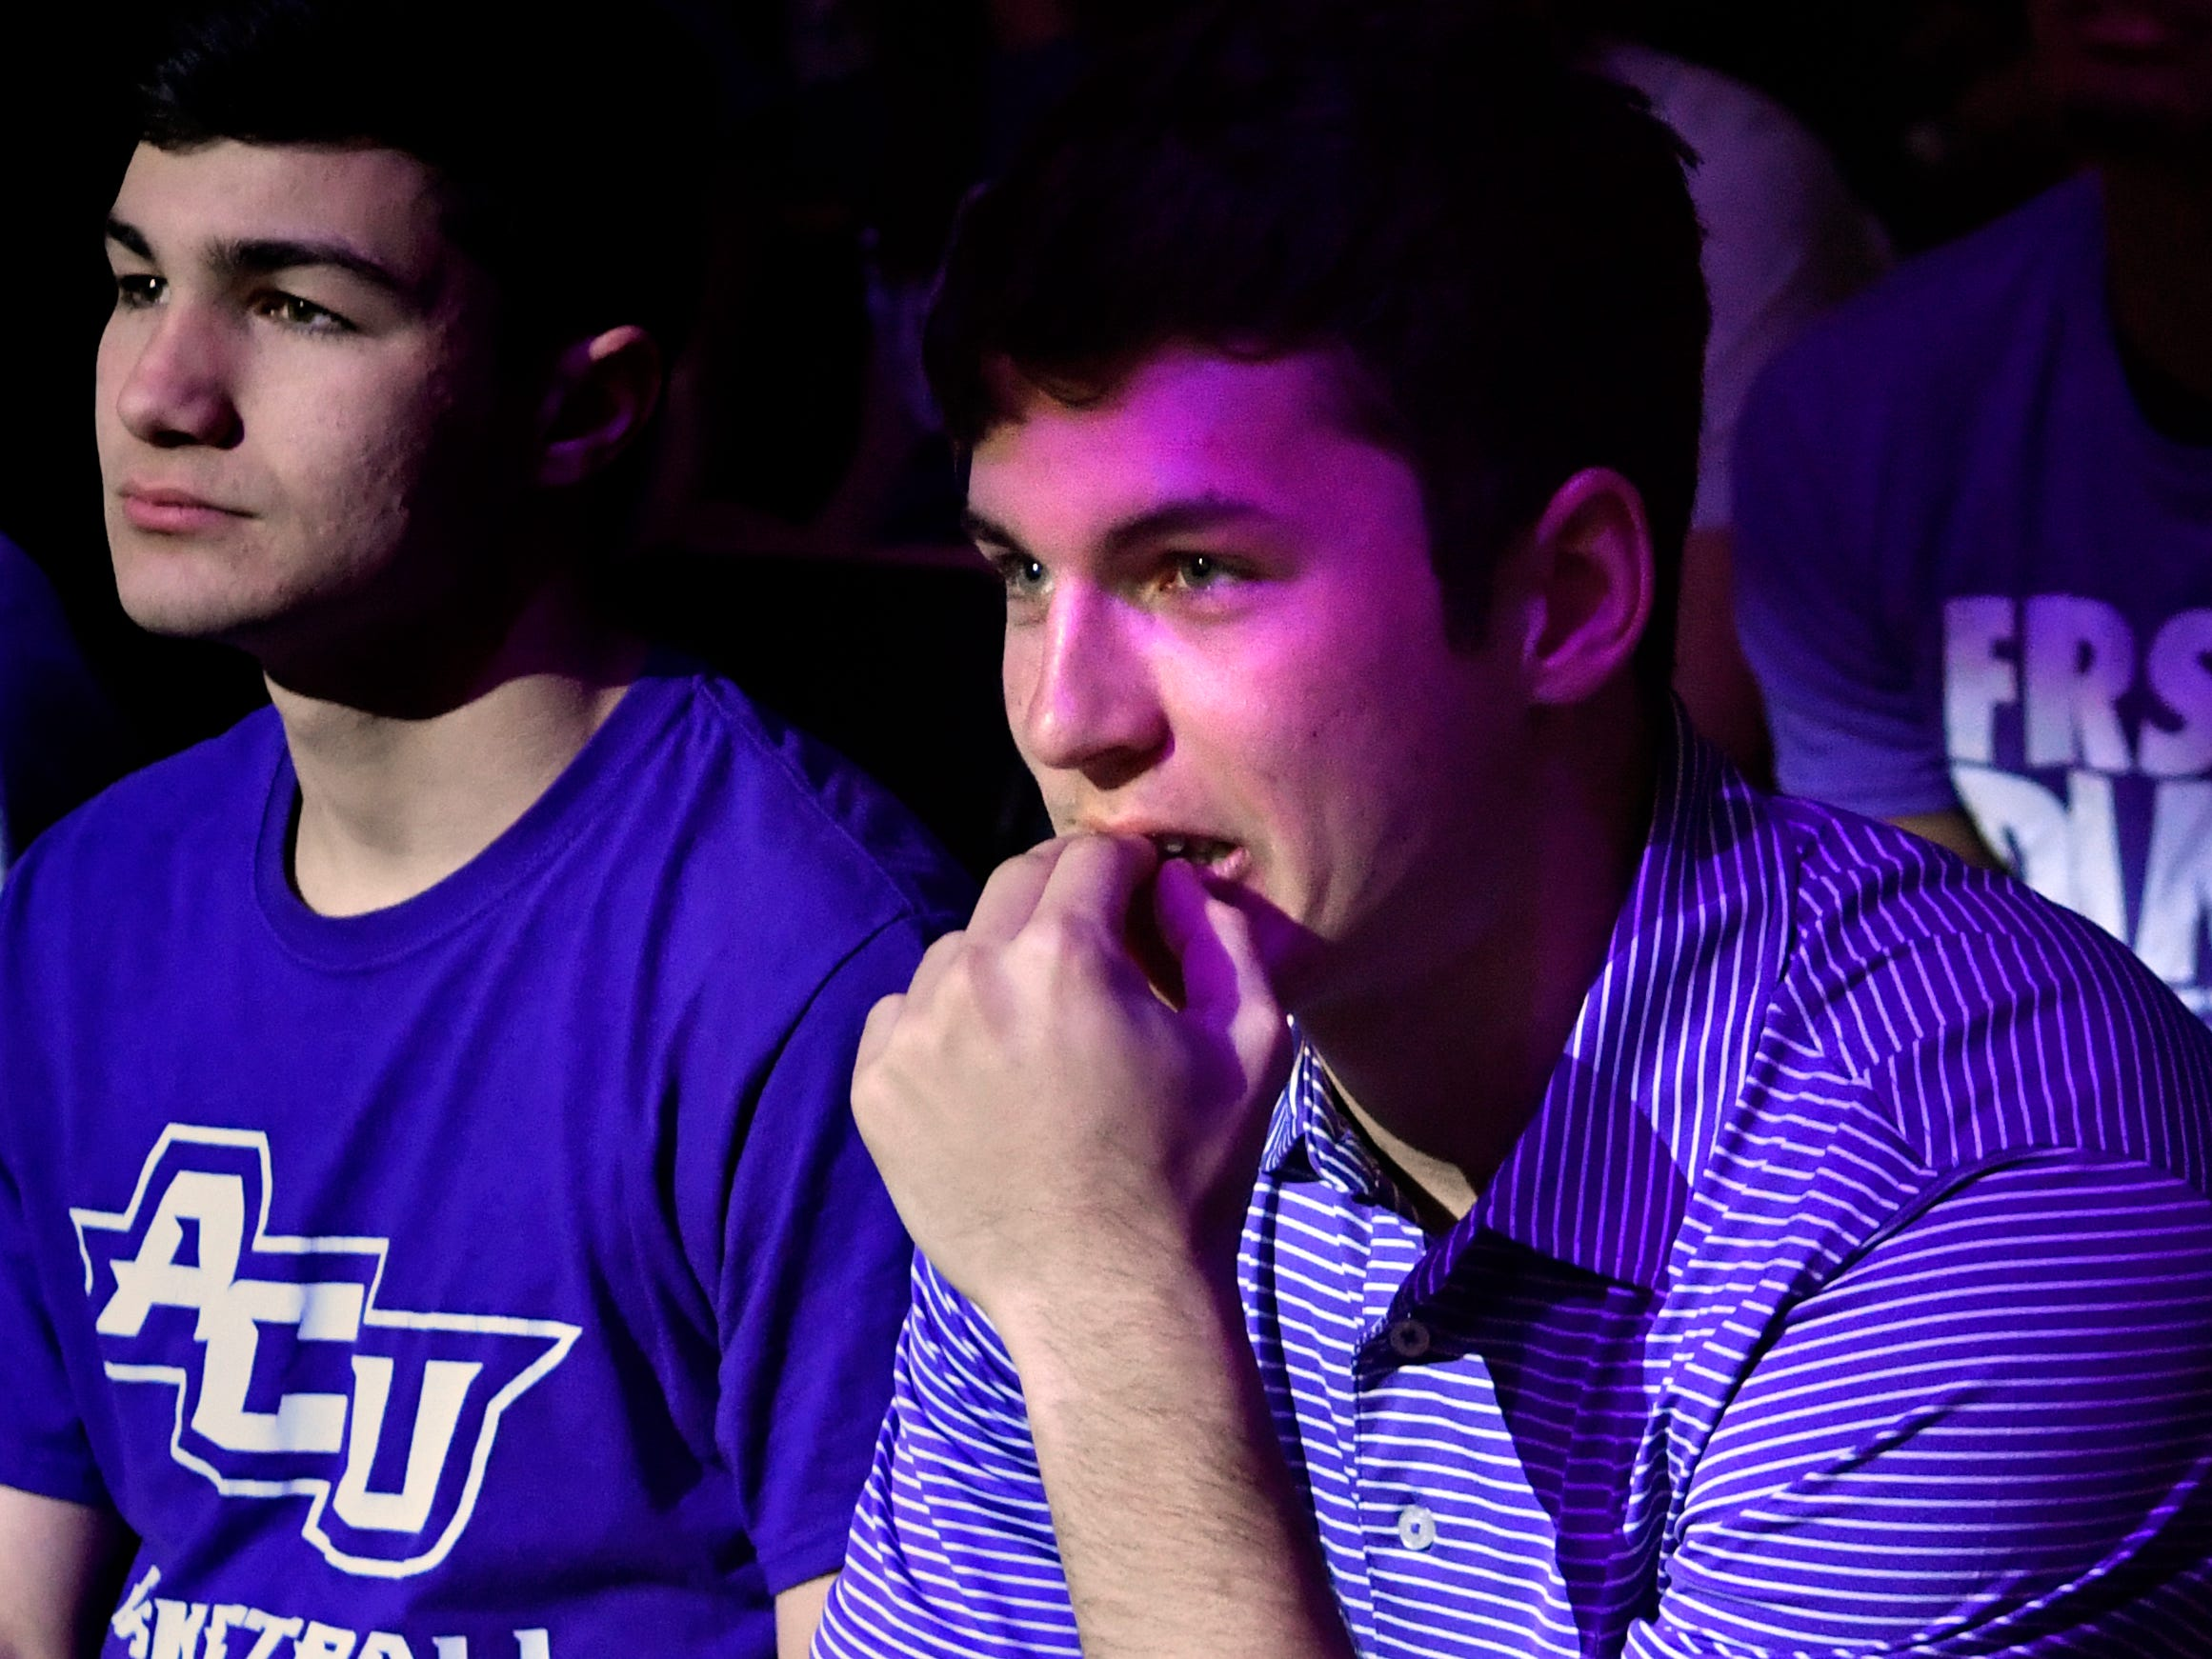 Steven Teel puts a hand to his chin as he watches with Andy McGrew the Abilene Christian University men play Kentucky during a watch party Thursday March 21, 2019 at Moody Coliseum. ACU ended their first-ever trip to the NCAA Tournament with a loss to UK, 79-44.